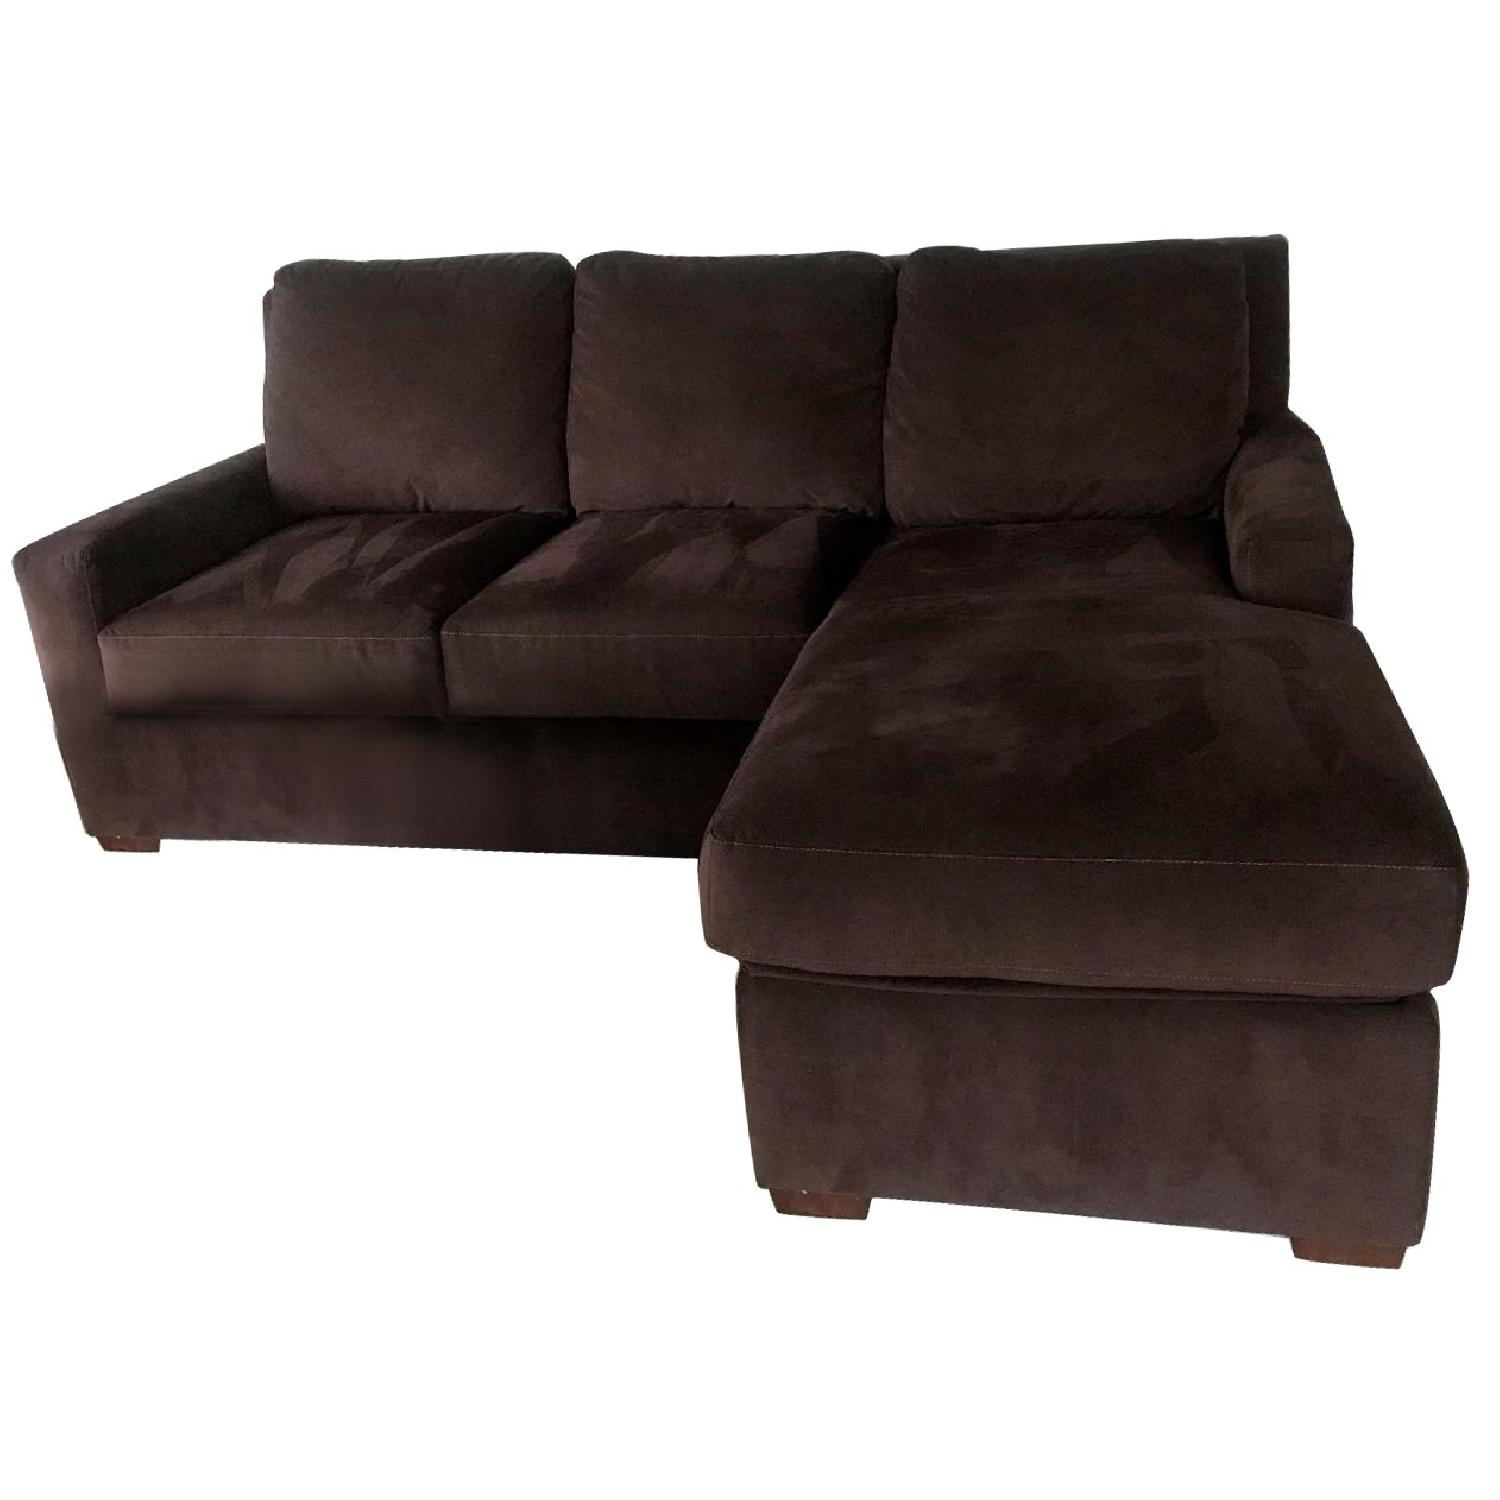 American Leather Queen Sleeper Sectional Sofa w/ - AptDeco